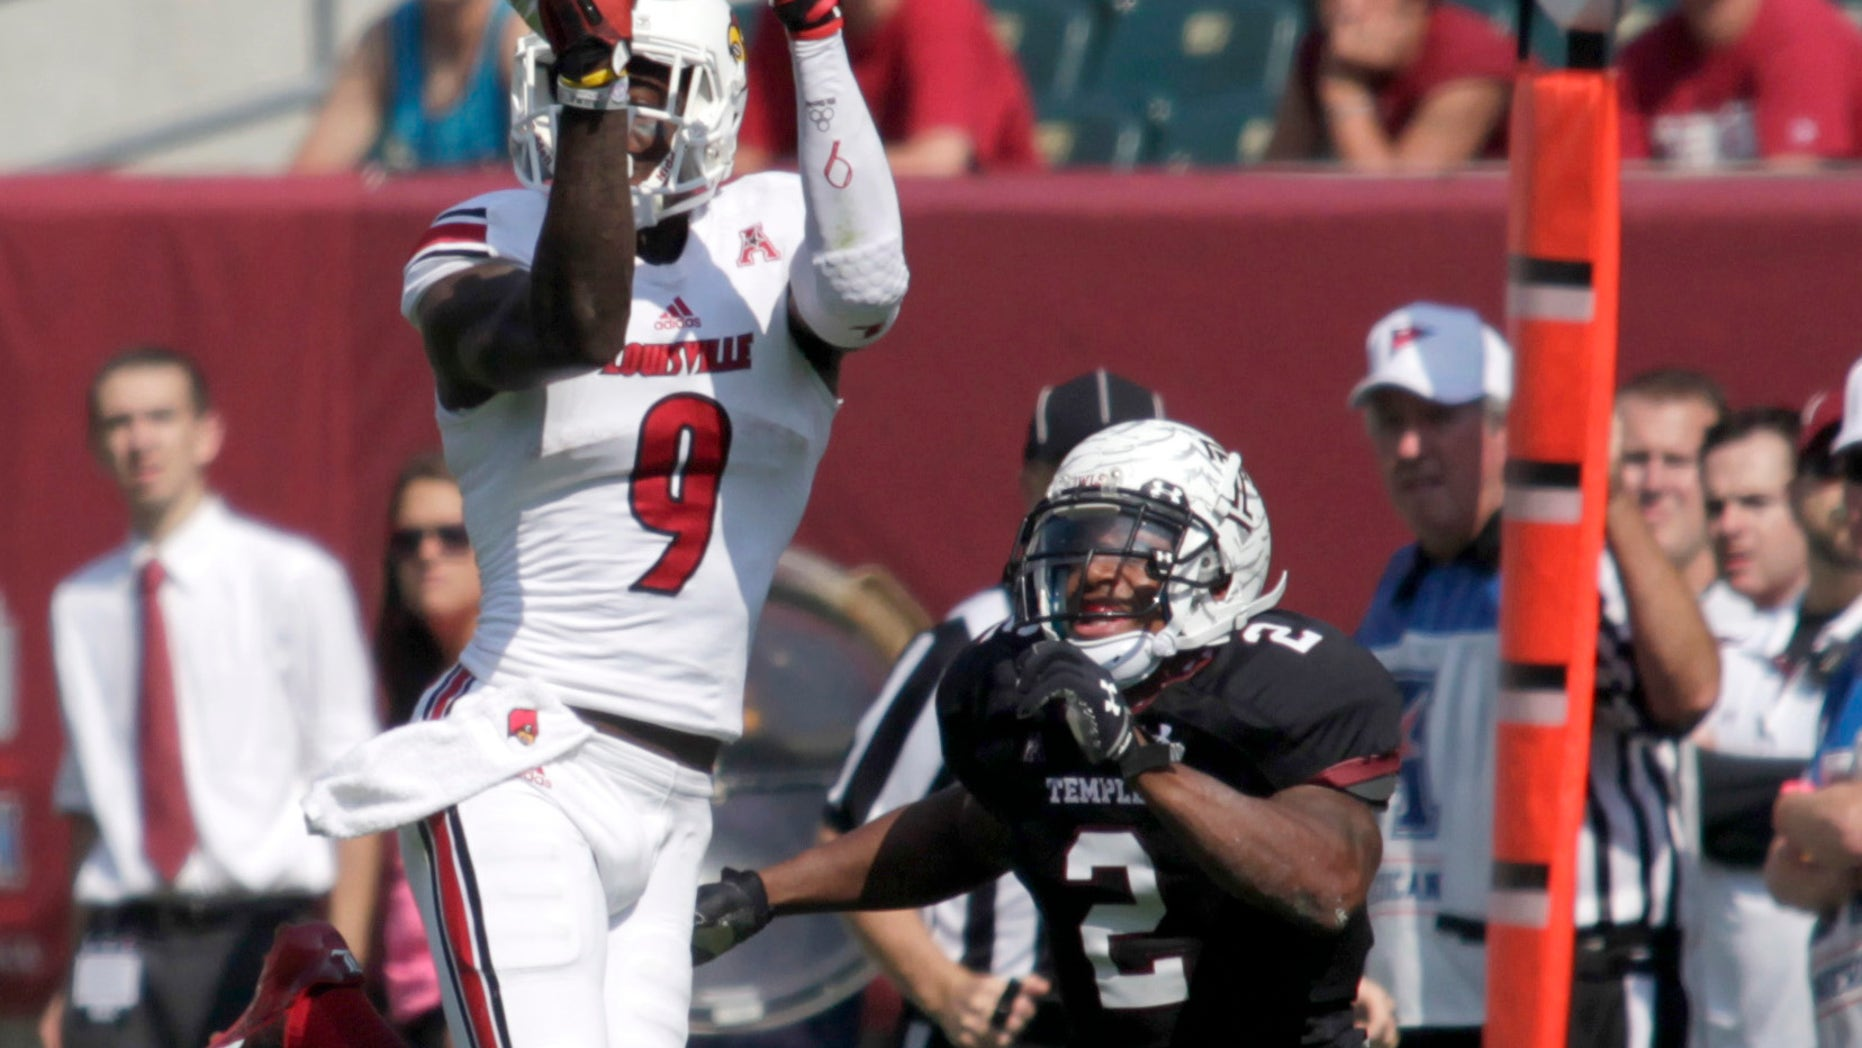 Louisville's  DeVante Parker (9) makes a reception for a first down as Temple's Anthony Robey (2) defends in the first half of an NCAA college football Game, Saturday Oct. 5 , 2013, in Philadelphia.  (AP Photo/H. Rumph Jr)